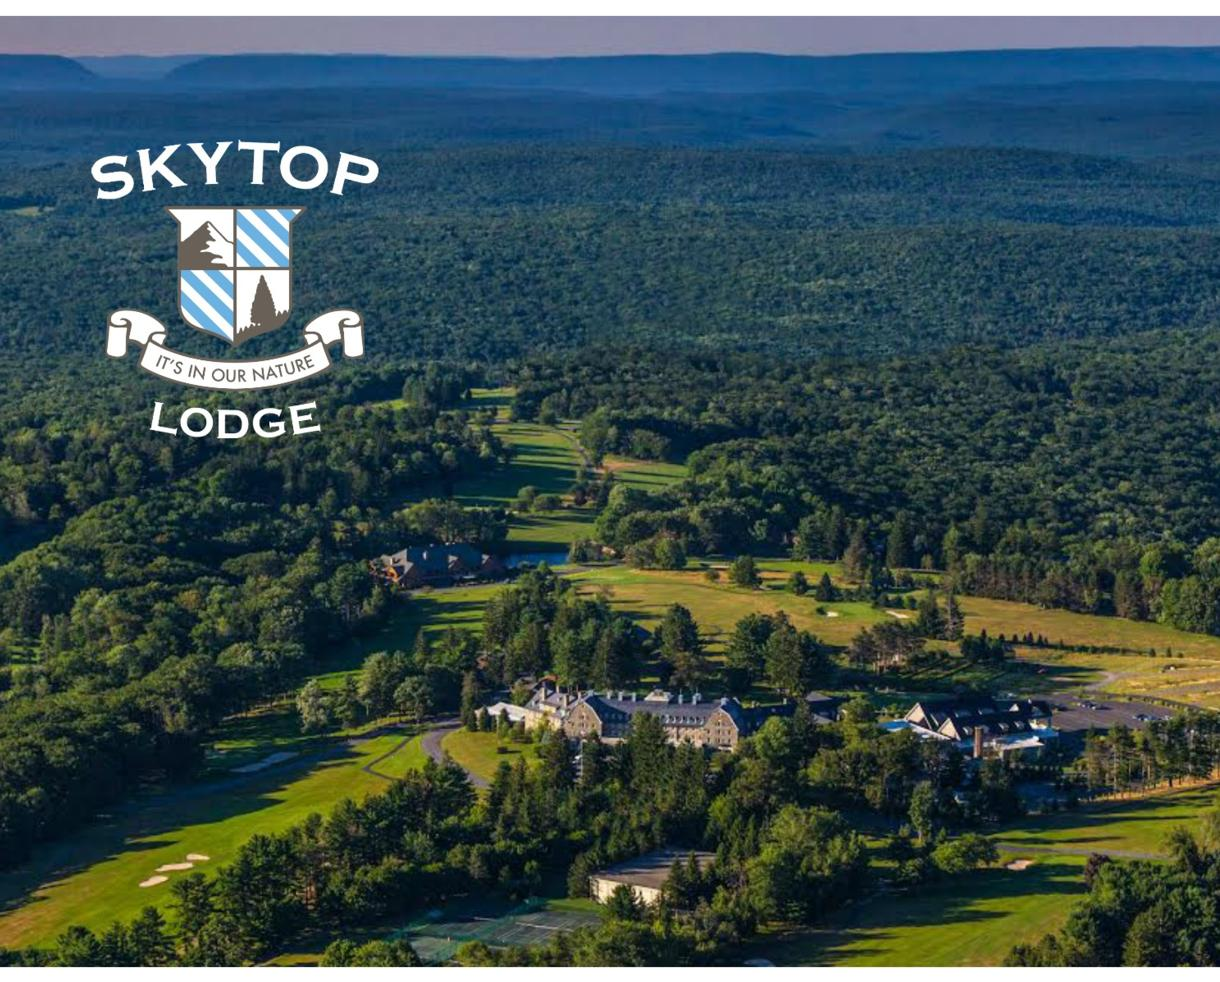 $219+ for Poconos Mountains Getaway Packages at Skytop Lodge Premier Family Resort (Up to 33% Off)